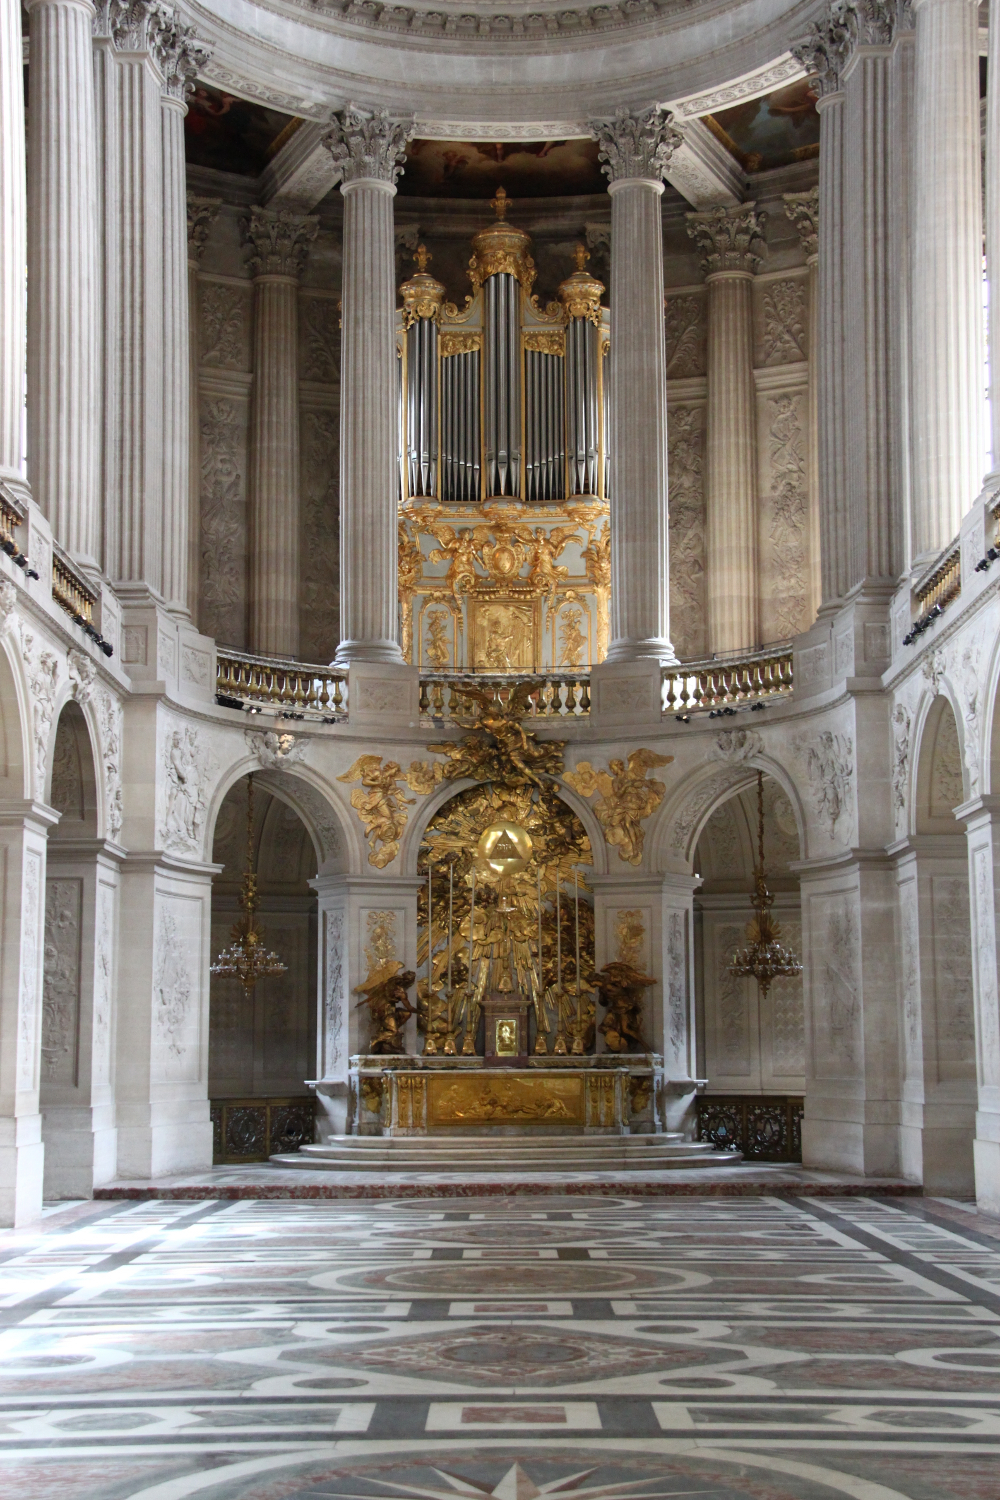 Palace of Versailles organ